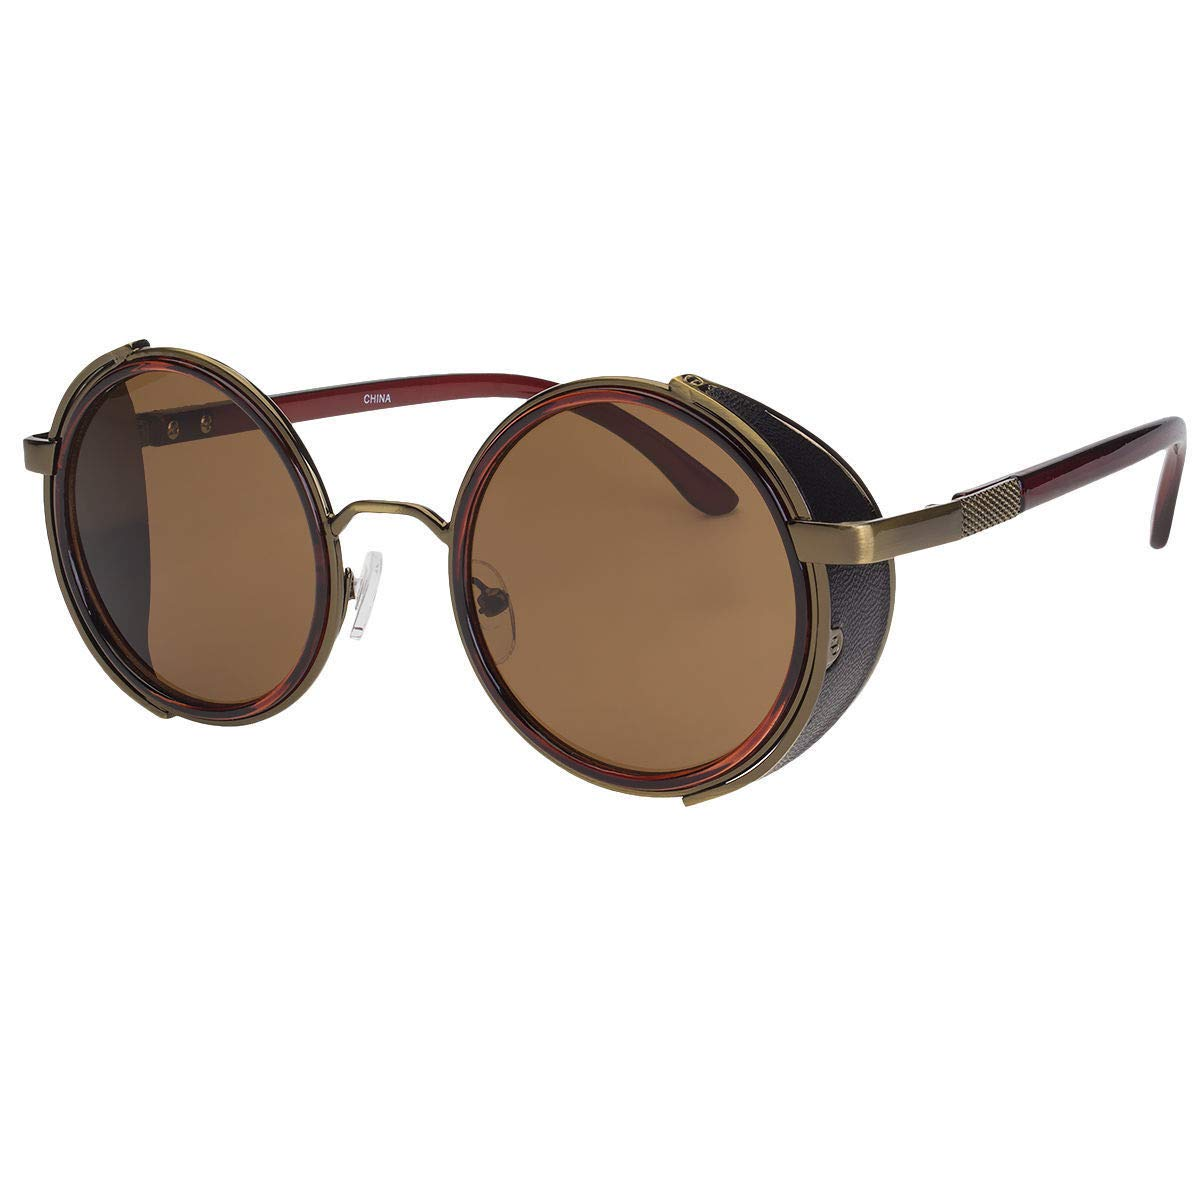 15ff0523a526 Amazon.com  Vintage Retro Mirror Round Sun Glasses Goggles Steampunk Punk  Sunglasses- Sold by Ed Em! (Light Brown)  Clothing